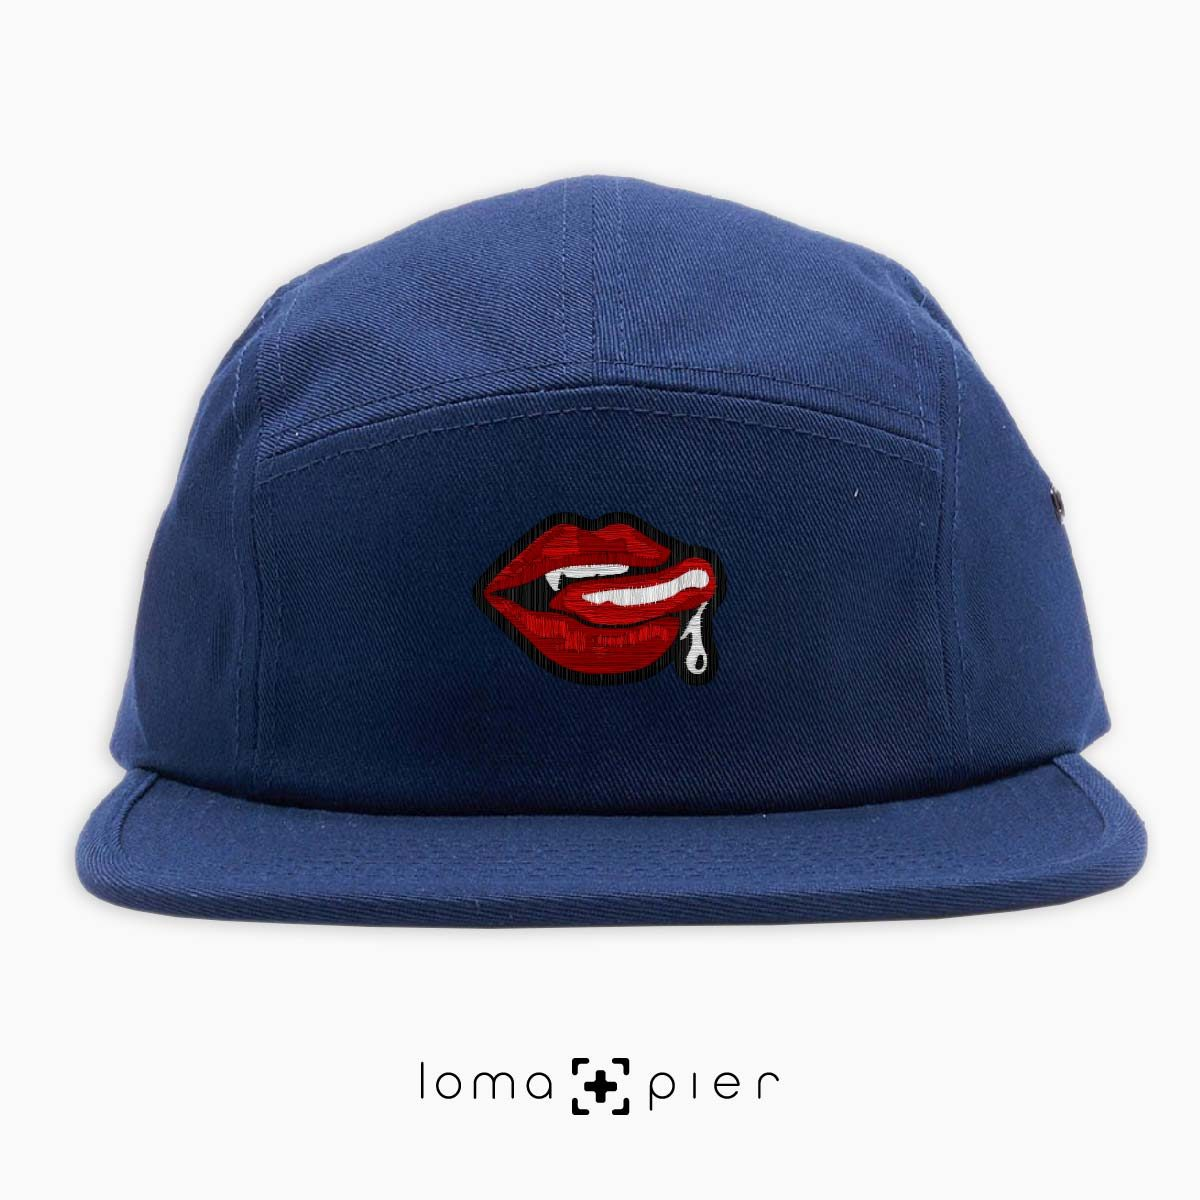 SUCCUBUS icon embroidered on a navy blue cotton 5-panel hat with multicolor thread by loma+pier hat store